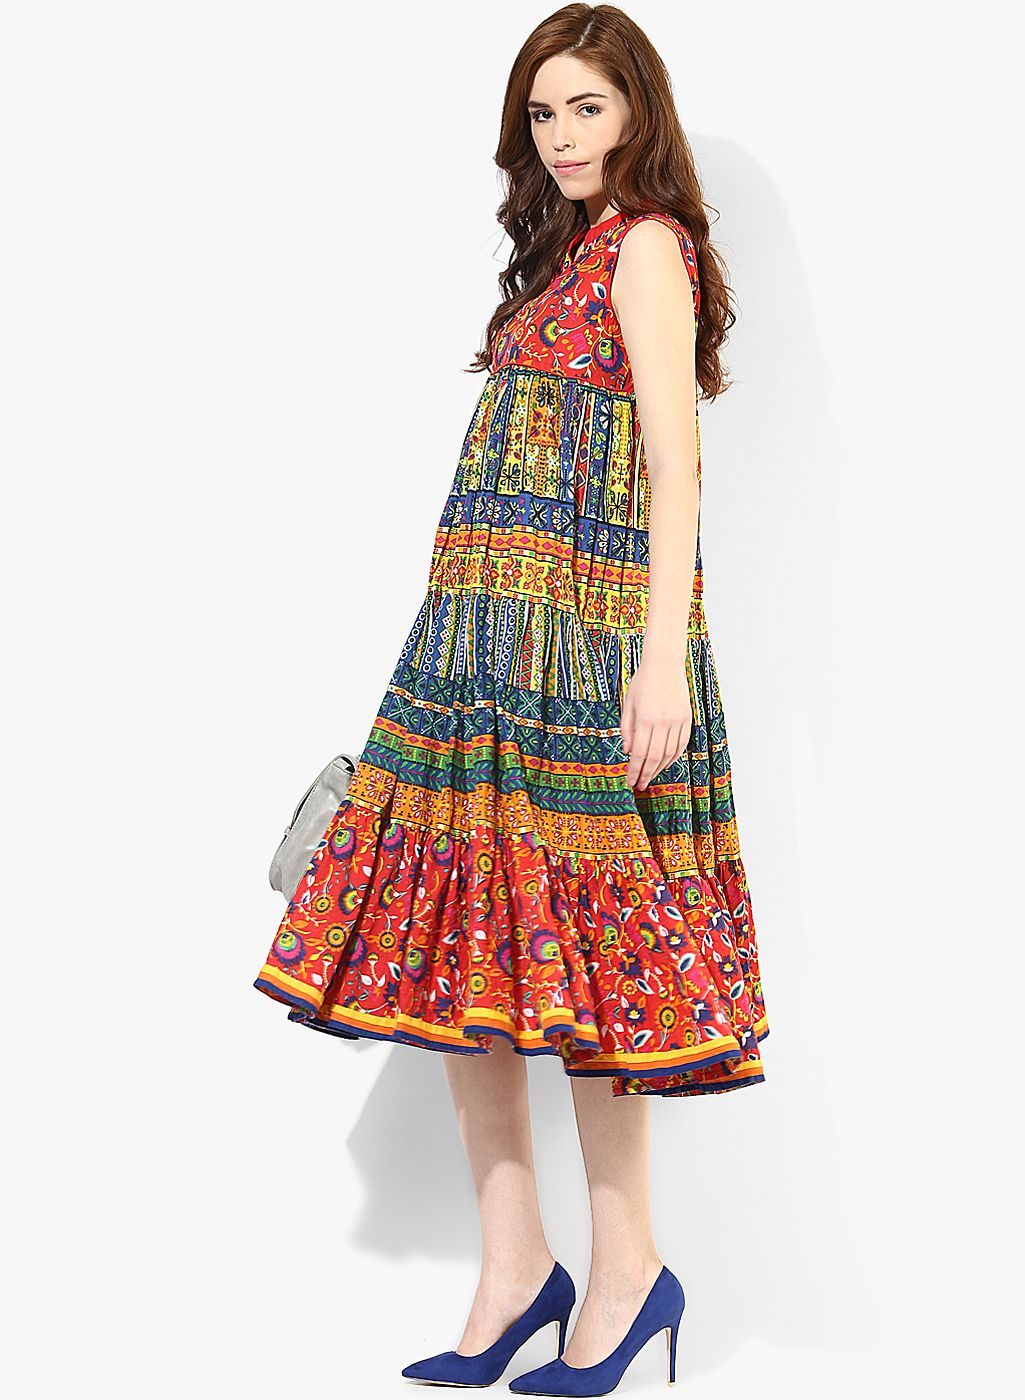 451a3faabb01 Buy Sangria Maxi Length Tier Sleeveless Dress for Women Online India, Best  Prices, Reviews | SA038WA29HECINDFAS